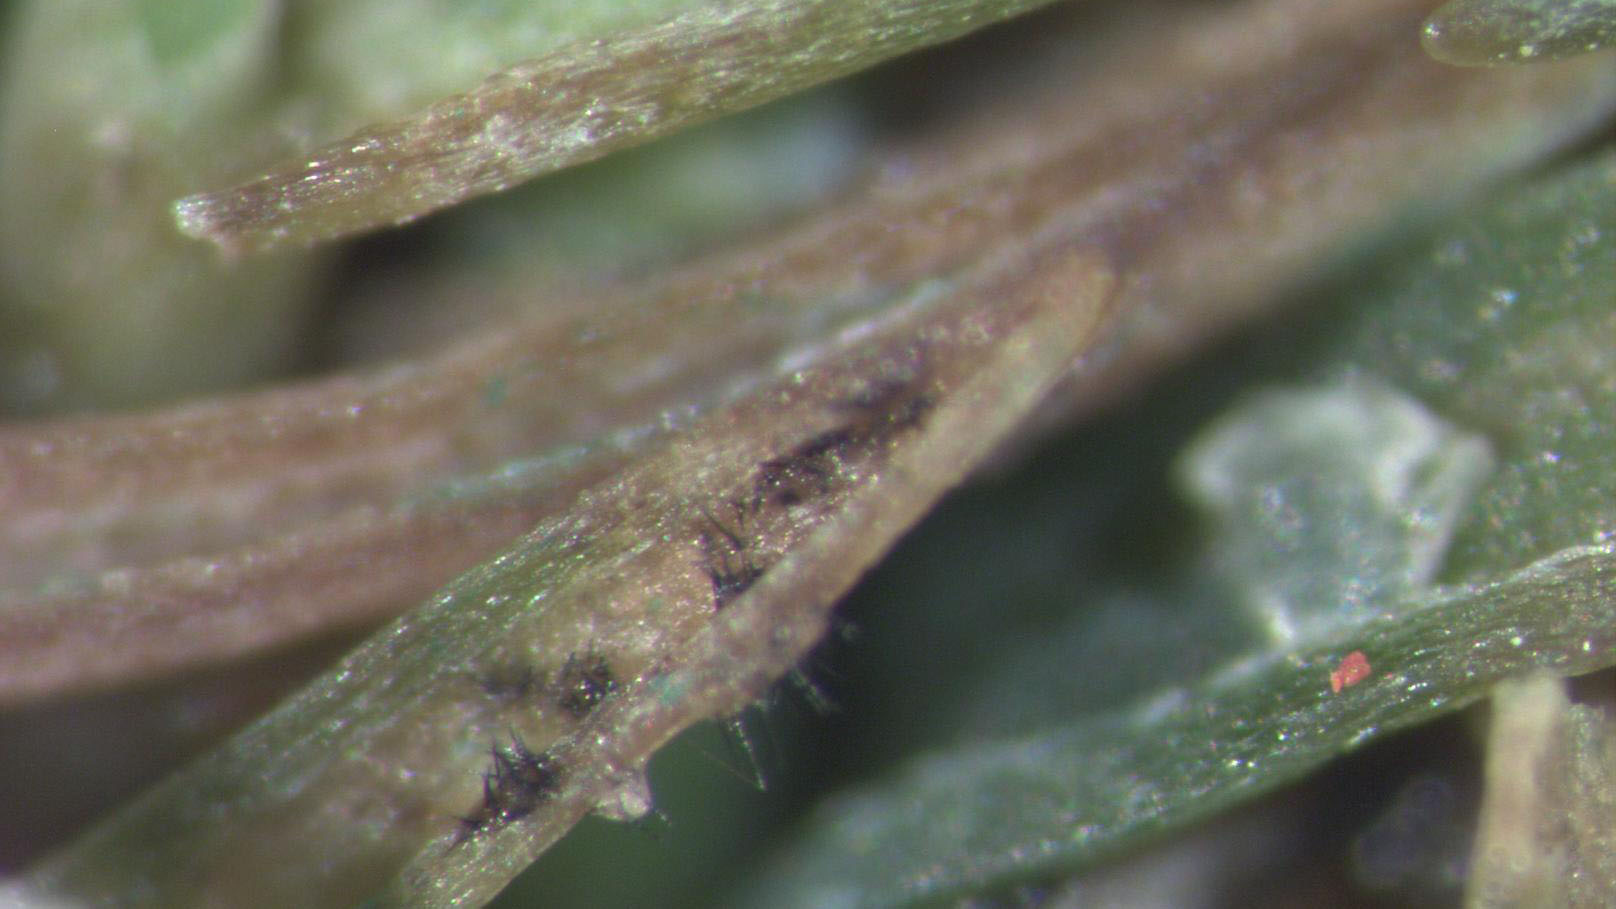 Anthracnose foliar symptoms